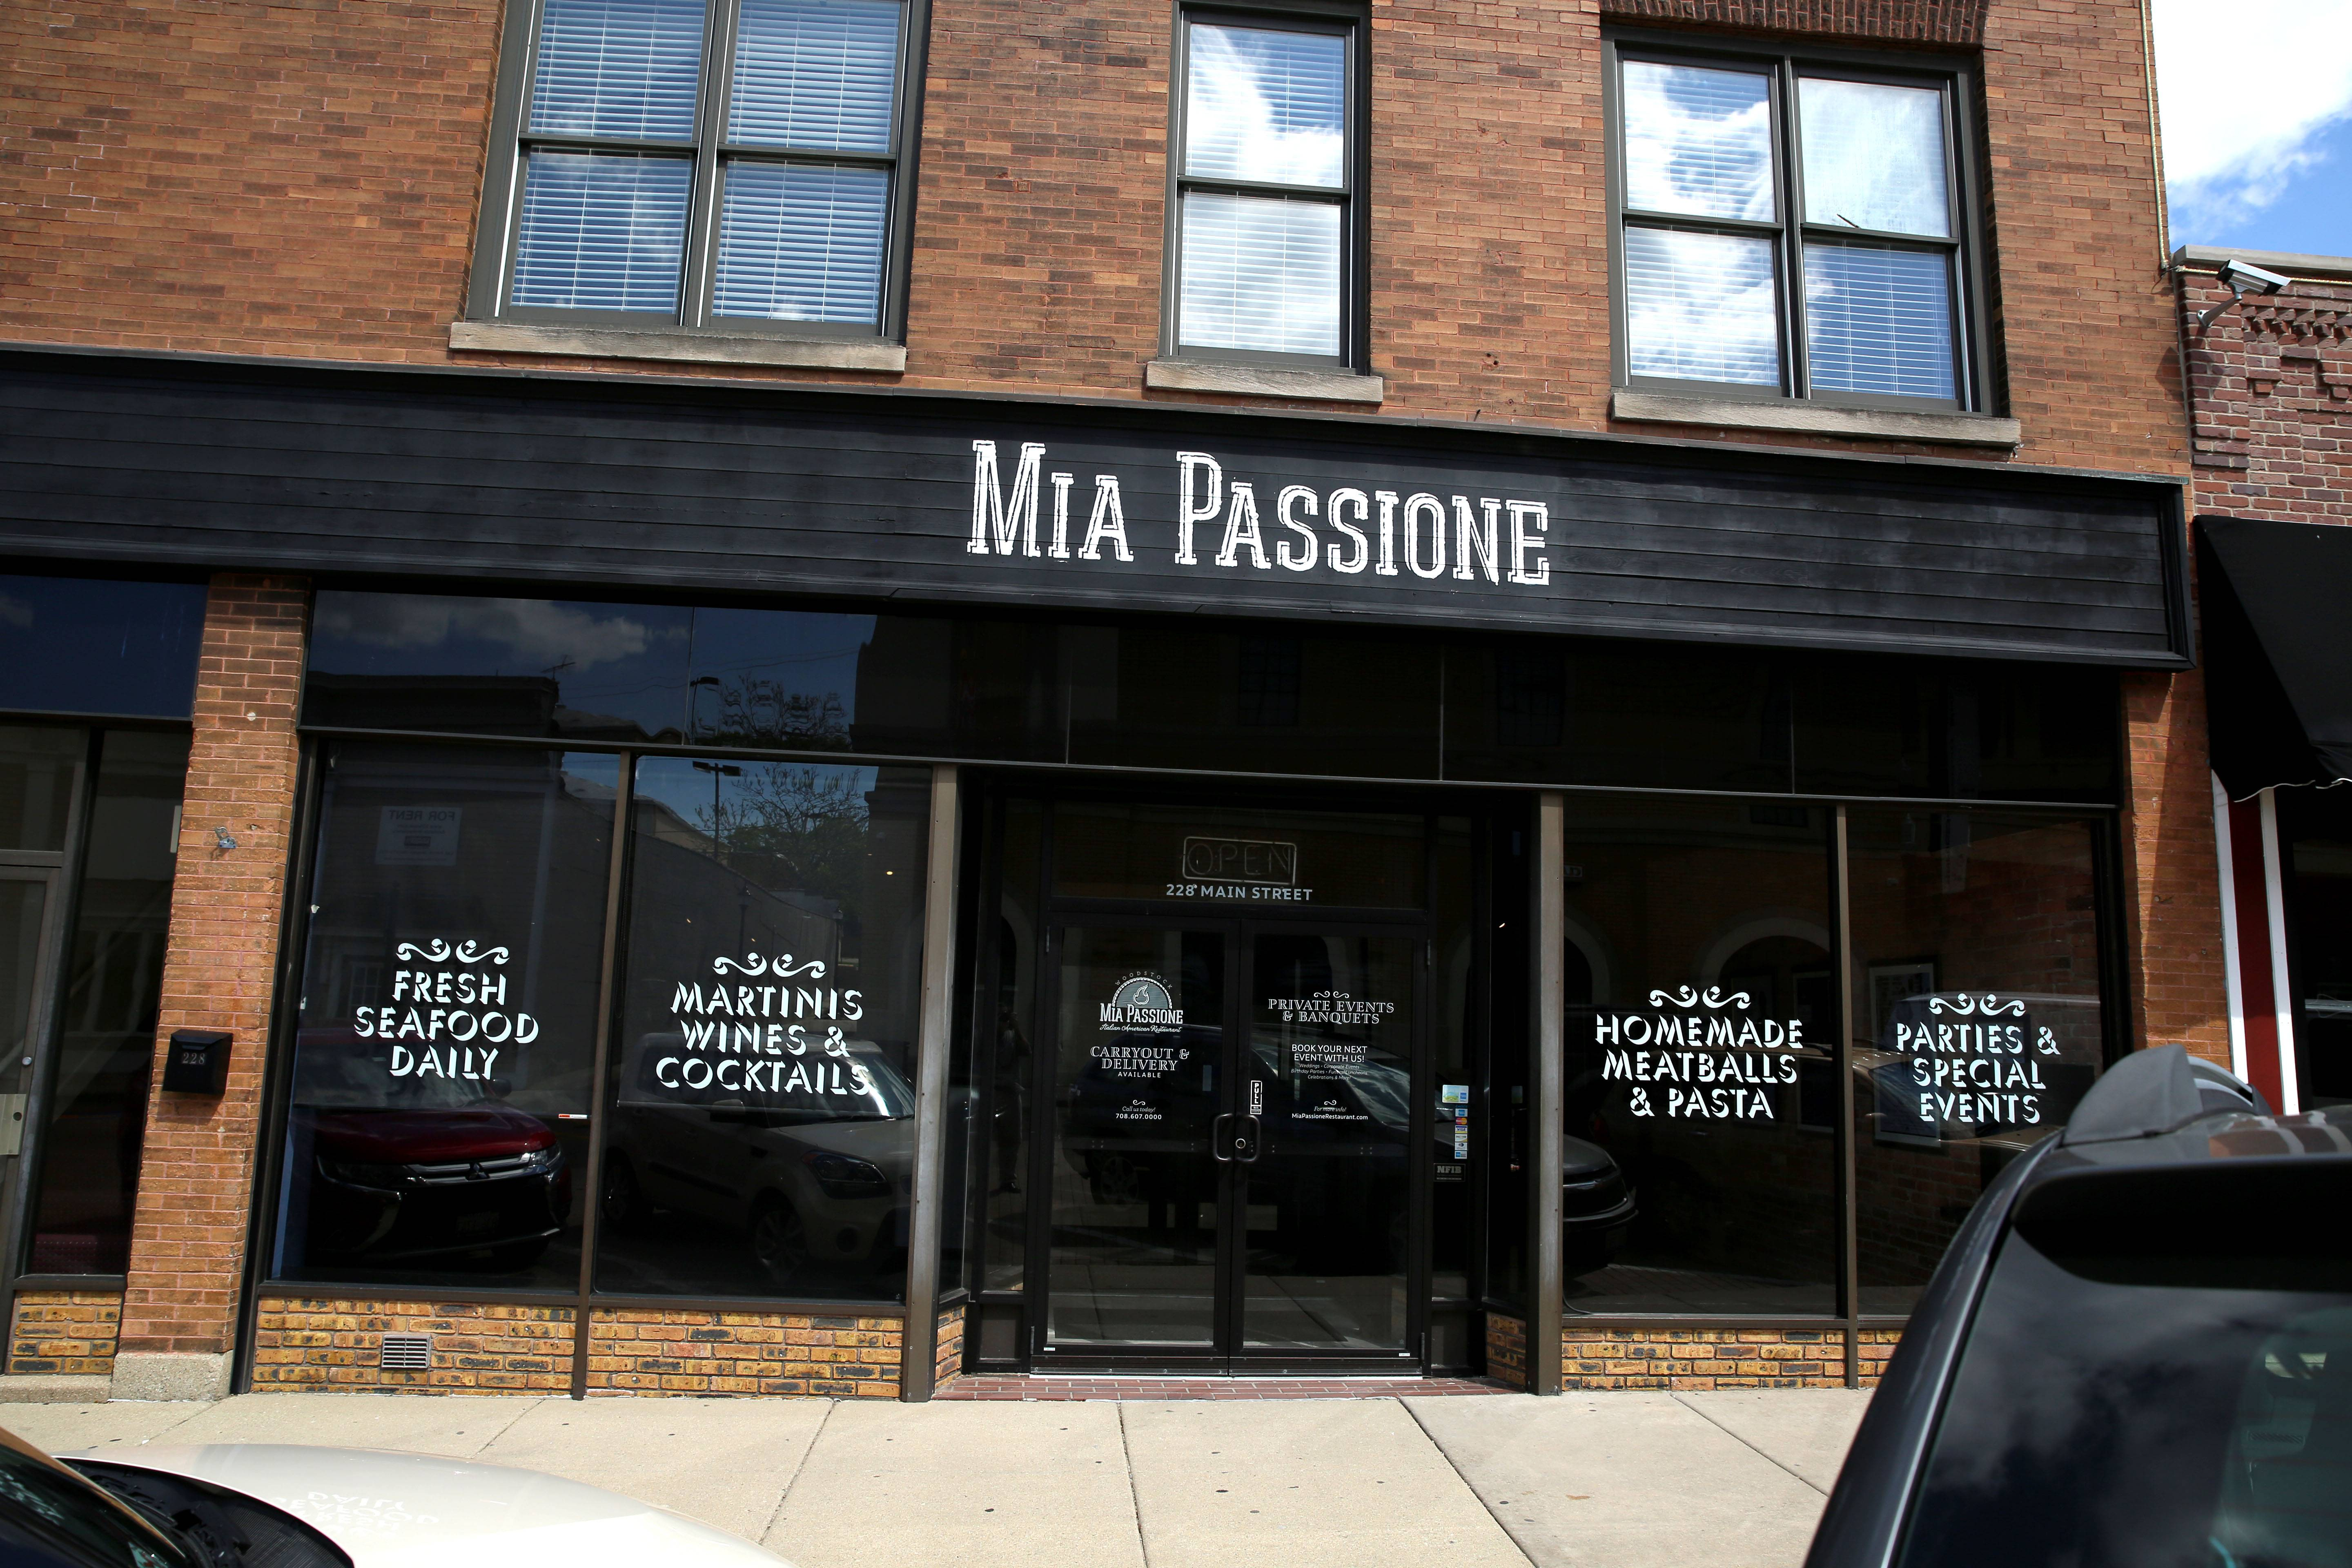 Mia Passione opened in Woodstock in early March.